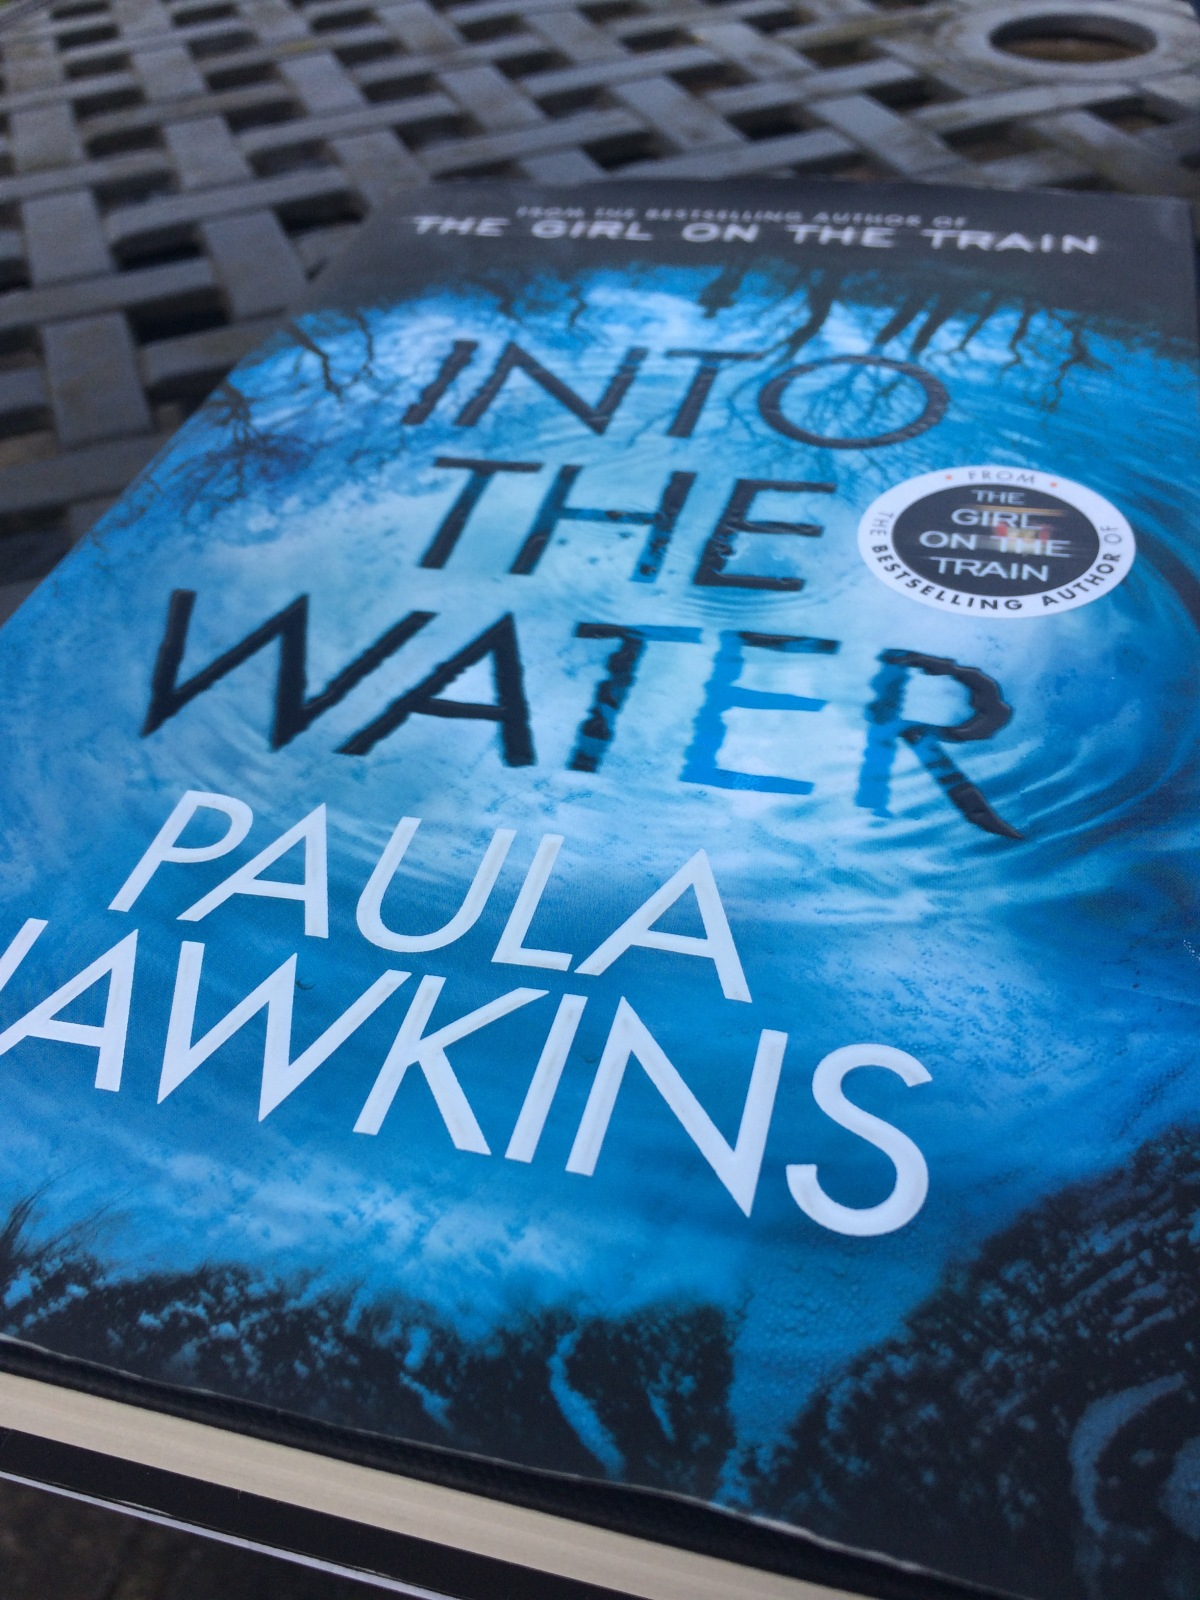 A reviews of Into the Water by Paula Hawkins (Author of Girl on the Train). For those reading it or thinking of reading it onwards. Including a character list (without spoilers) which I think would have been handy at the front of the book.